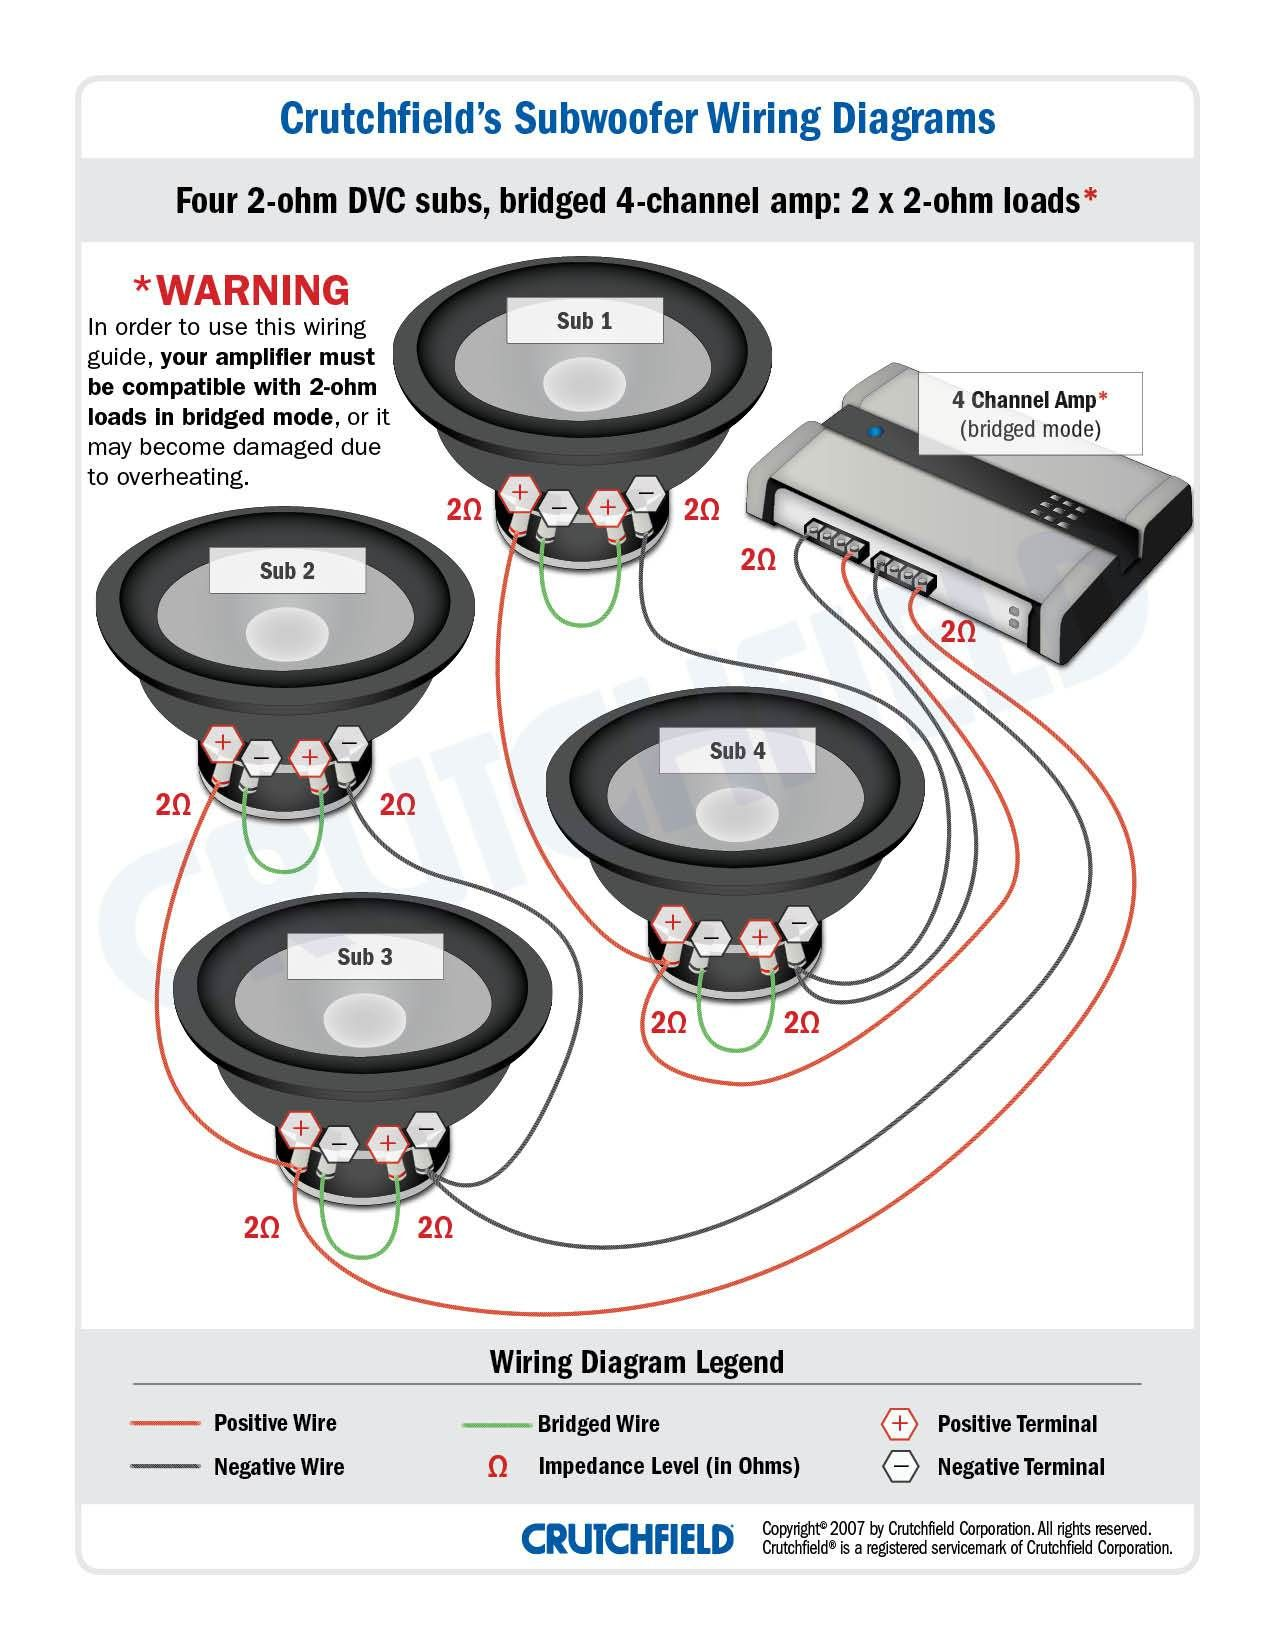 Subwoofer wiring diagrams throughout 4 ohm dual voice coil diagram subwoofer wiring diagrams throughout 4 ohm dual voice coil diagram inside 1 asfbconference2016 Image collections